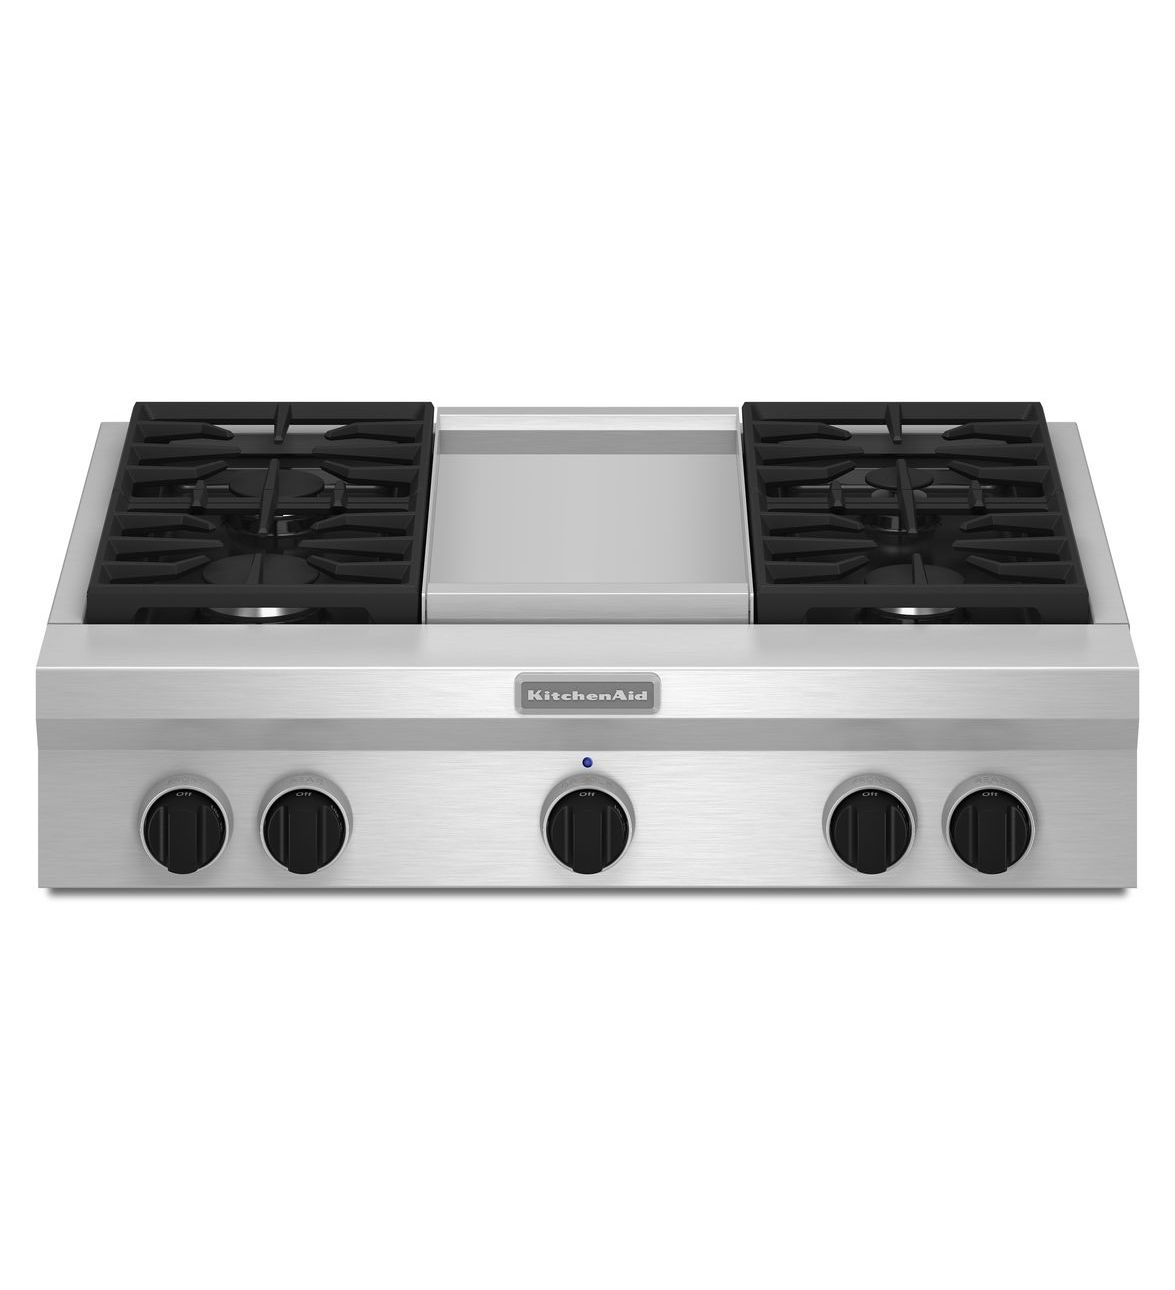 Kitchenaid 36 4 Burner Griddle Common Style Cooktop